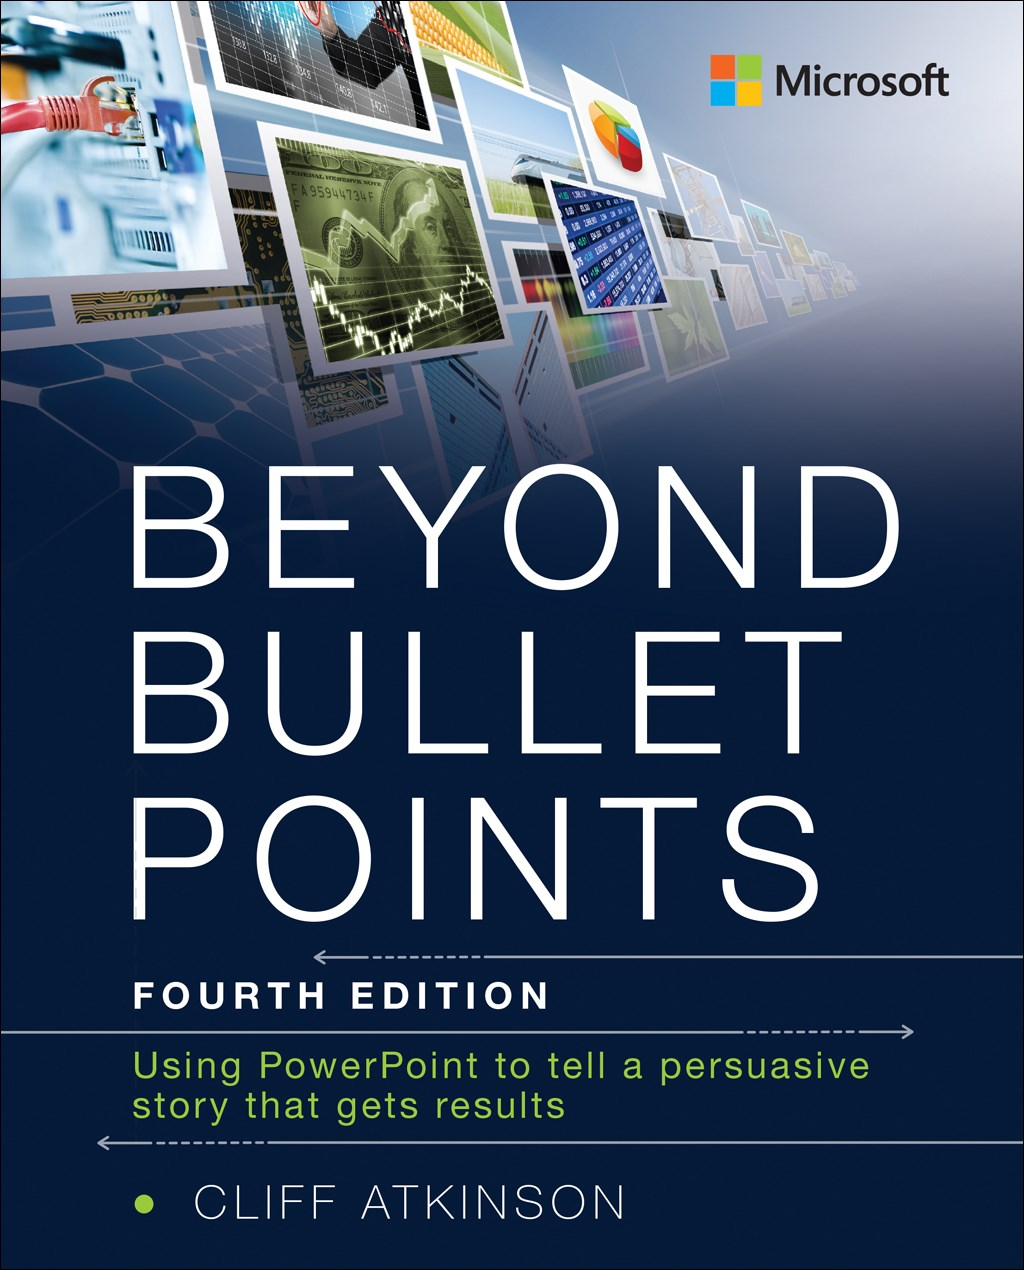 Beyond Bullet Points: Using PowerPoint to tell a compelling story that gets results, 4th Edition